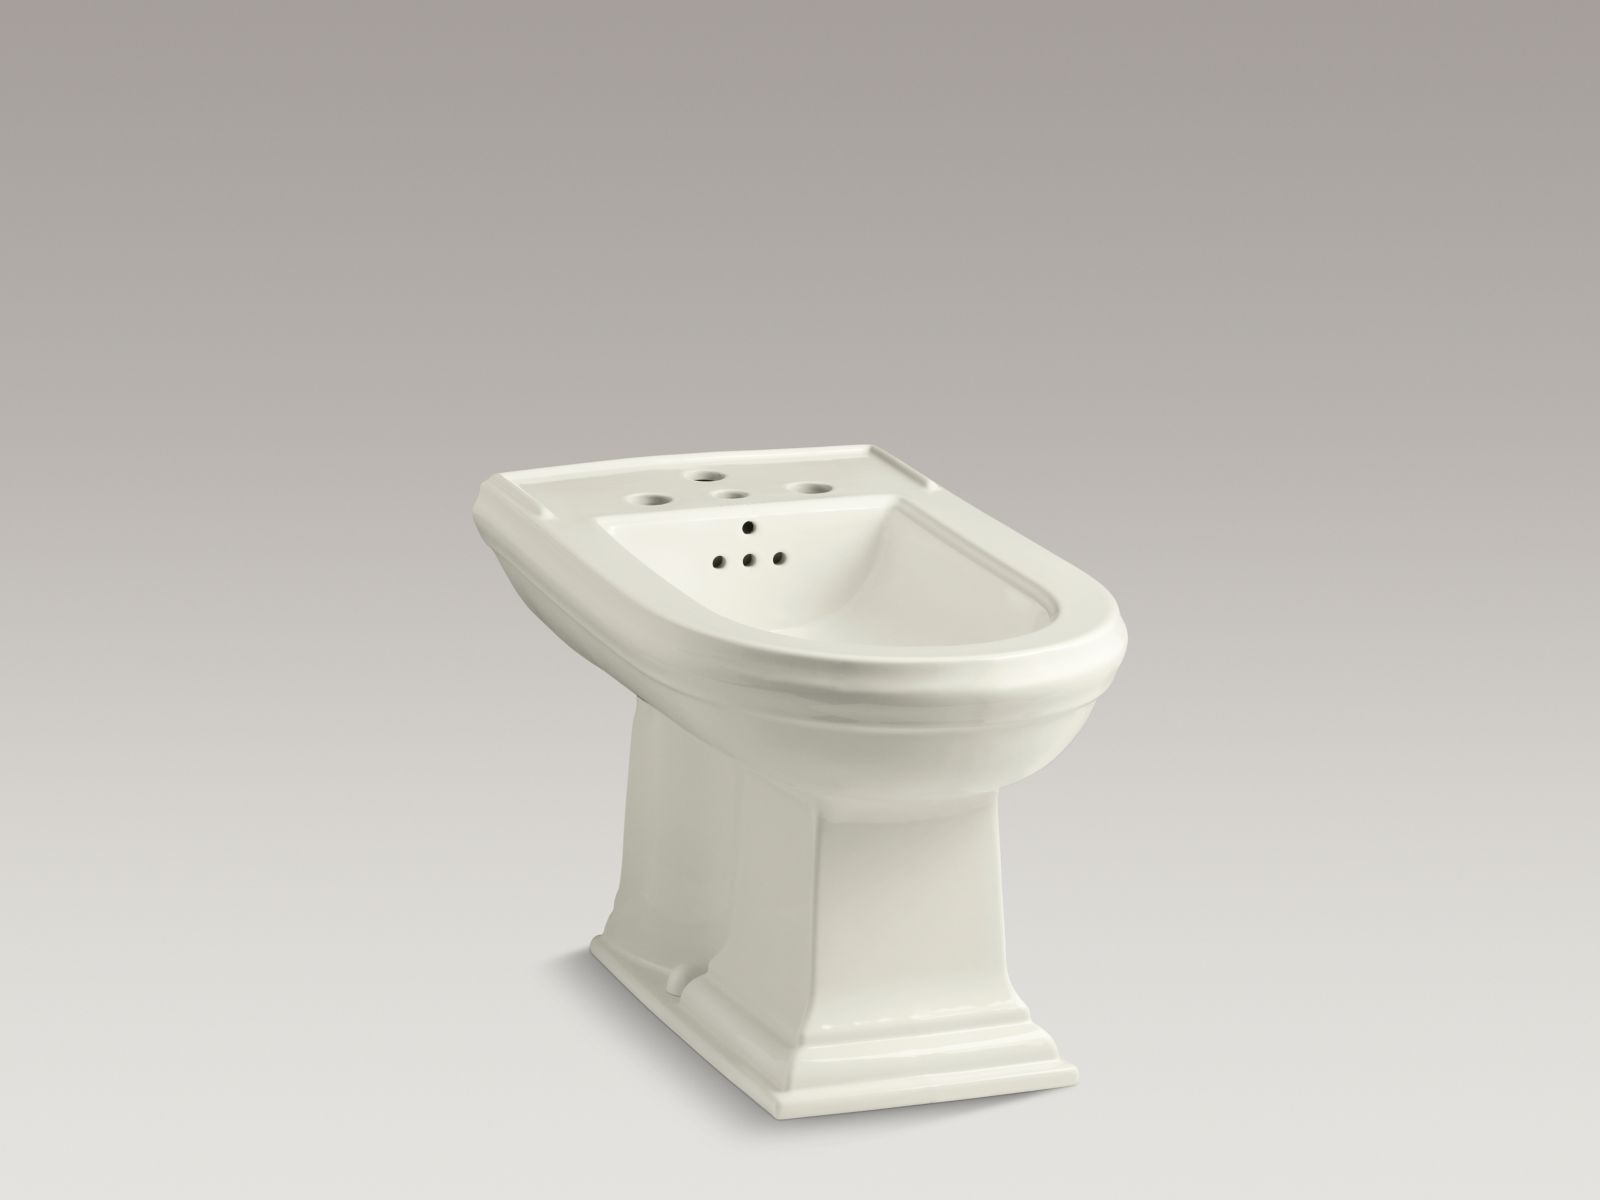 Kohler K-4886-96 Memoirs Vertical Spray Bidet with 4 Faucet Holes Biscuit